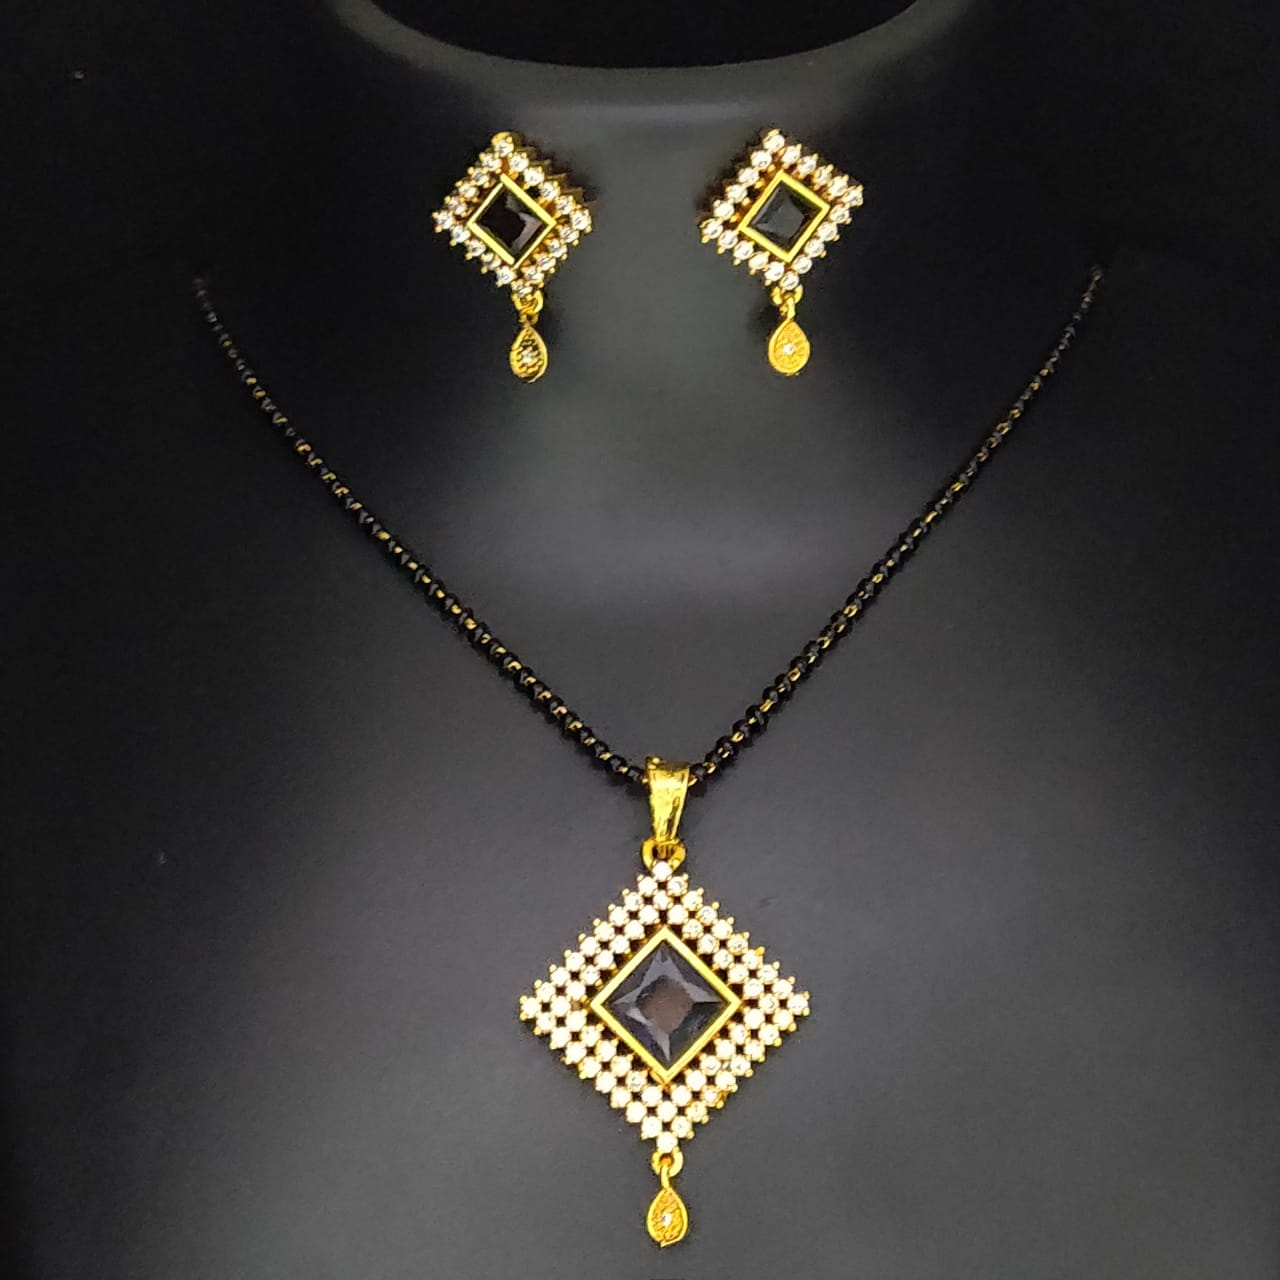 Pendants Set Jewellery for Women & Girls with Chain in American Diamond Gold Plated Pendant and Locket Sets for Gifts